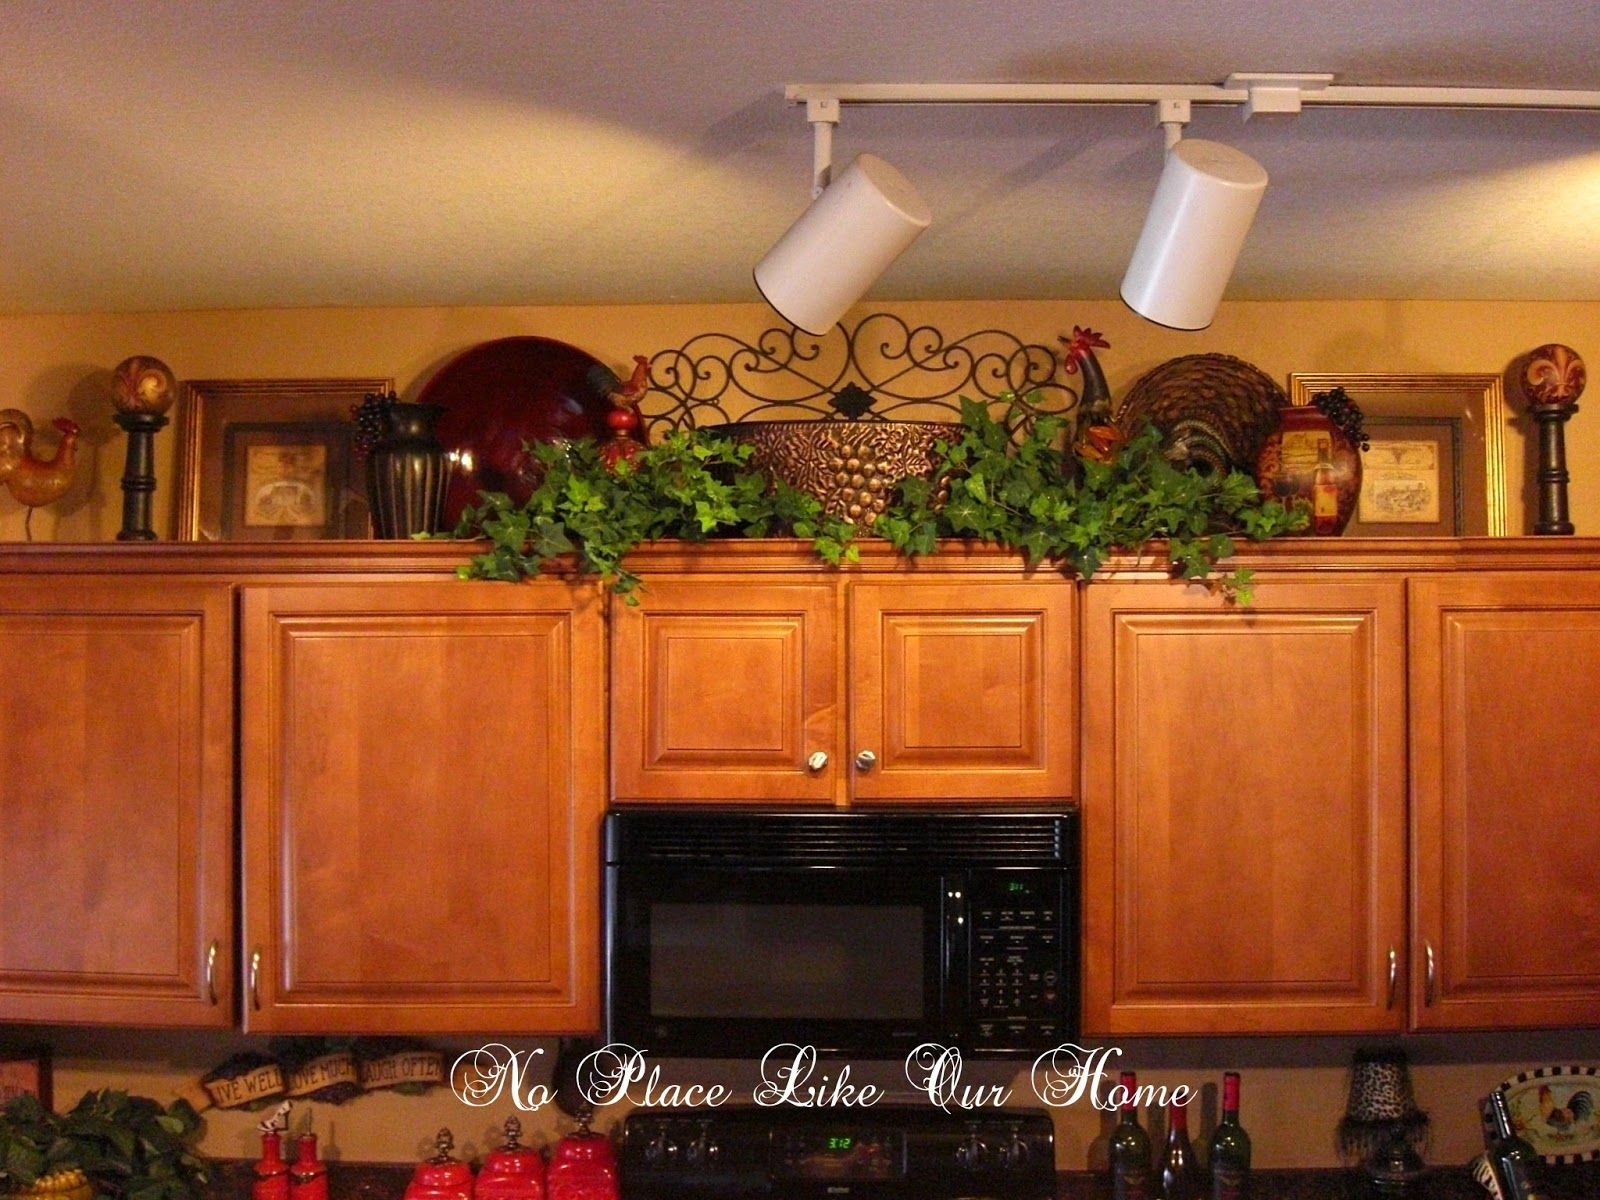 No Place Like Our Home: New Kitchen Vignette's | Tuscan ...